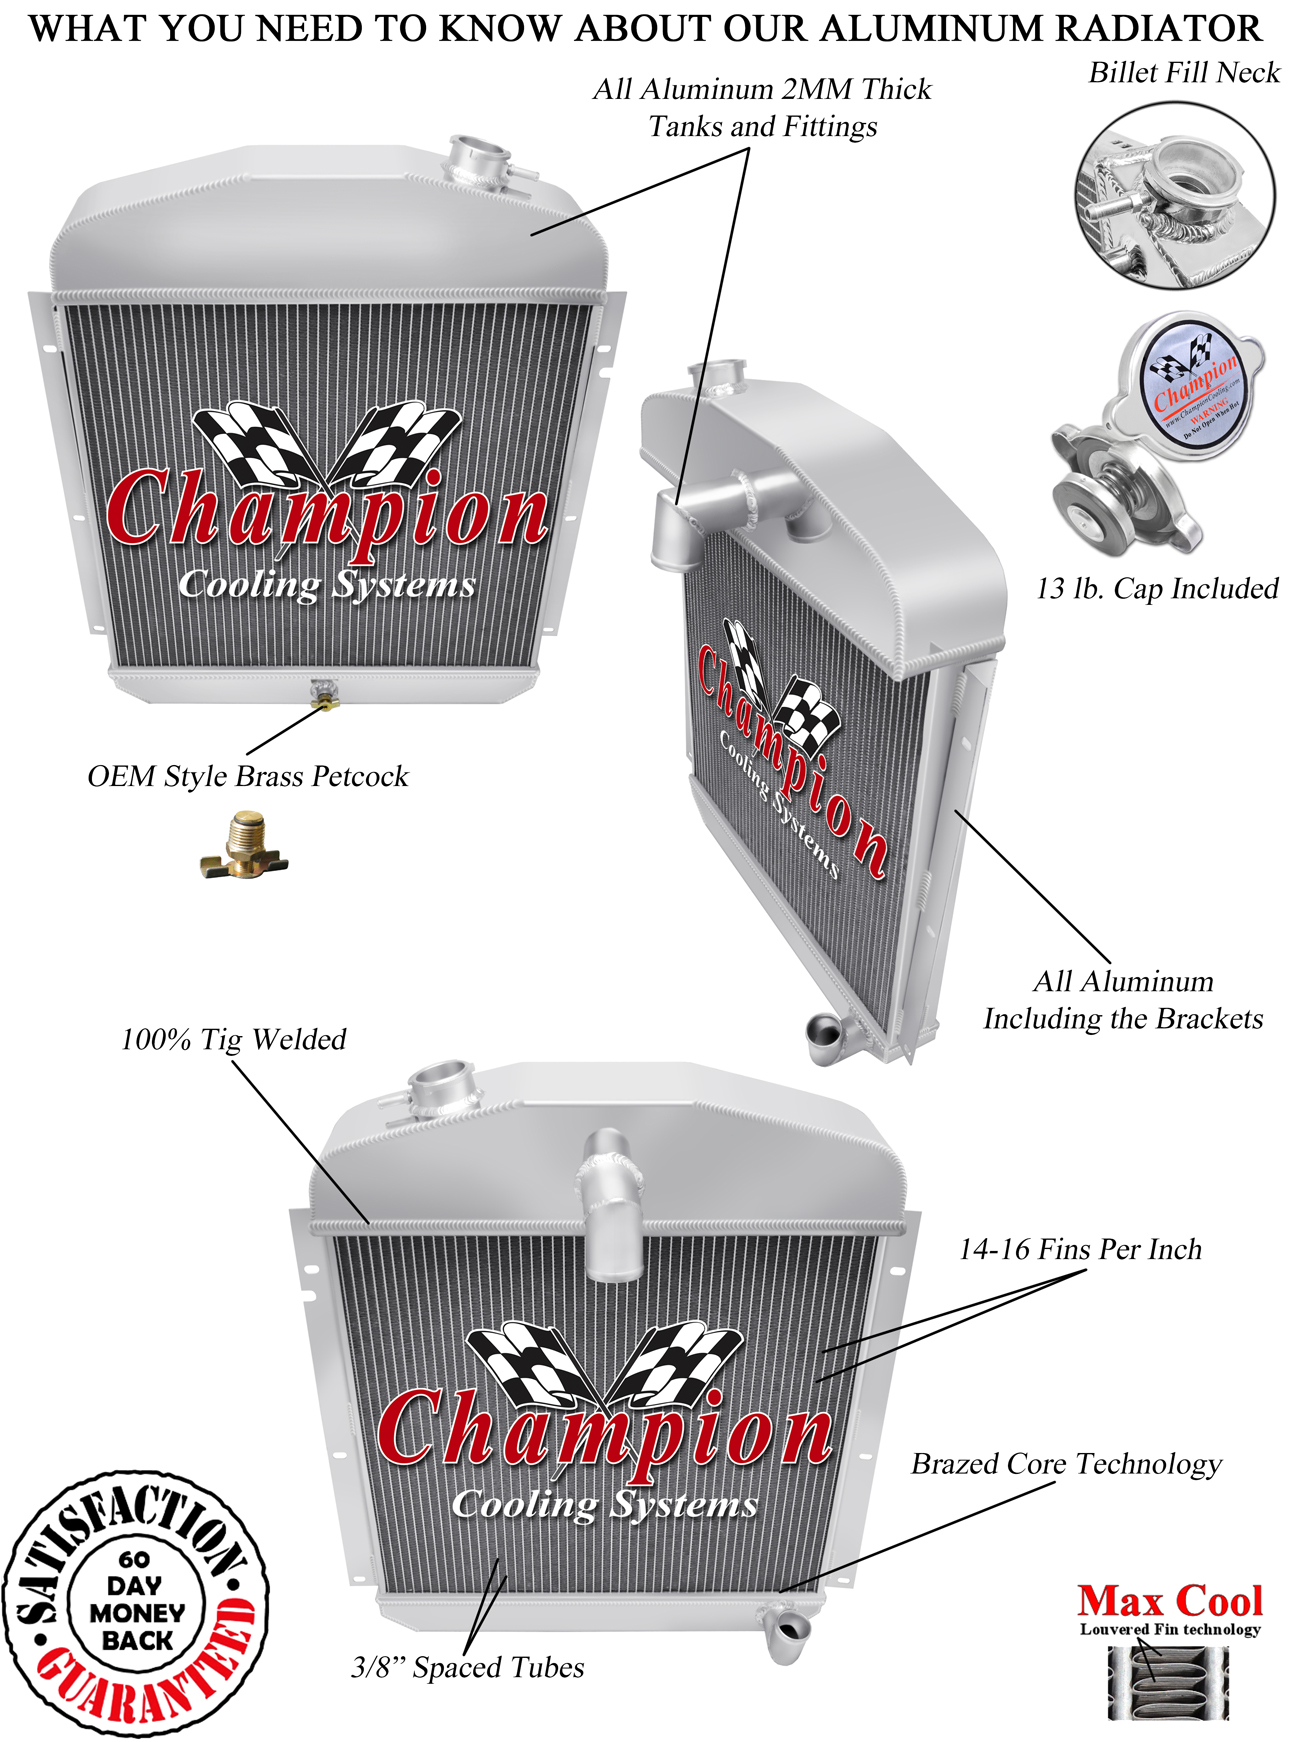 http://www.championcooling.com/photos/Photos%20White/Without%20Fans/4749/4749-Diagram.jpg